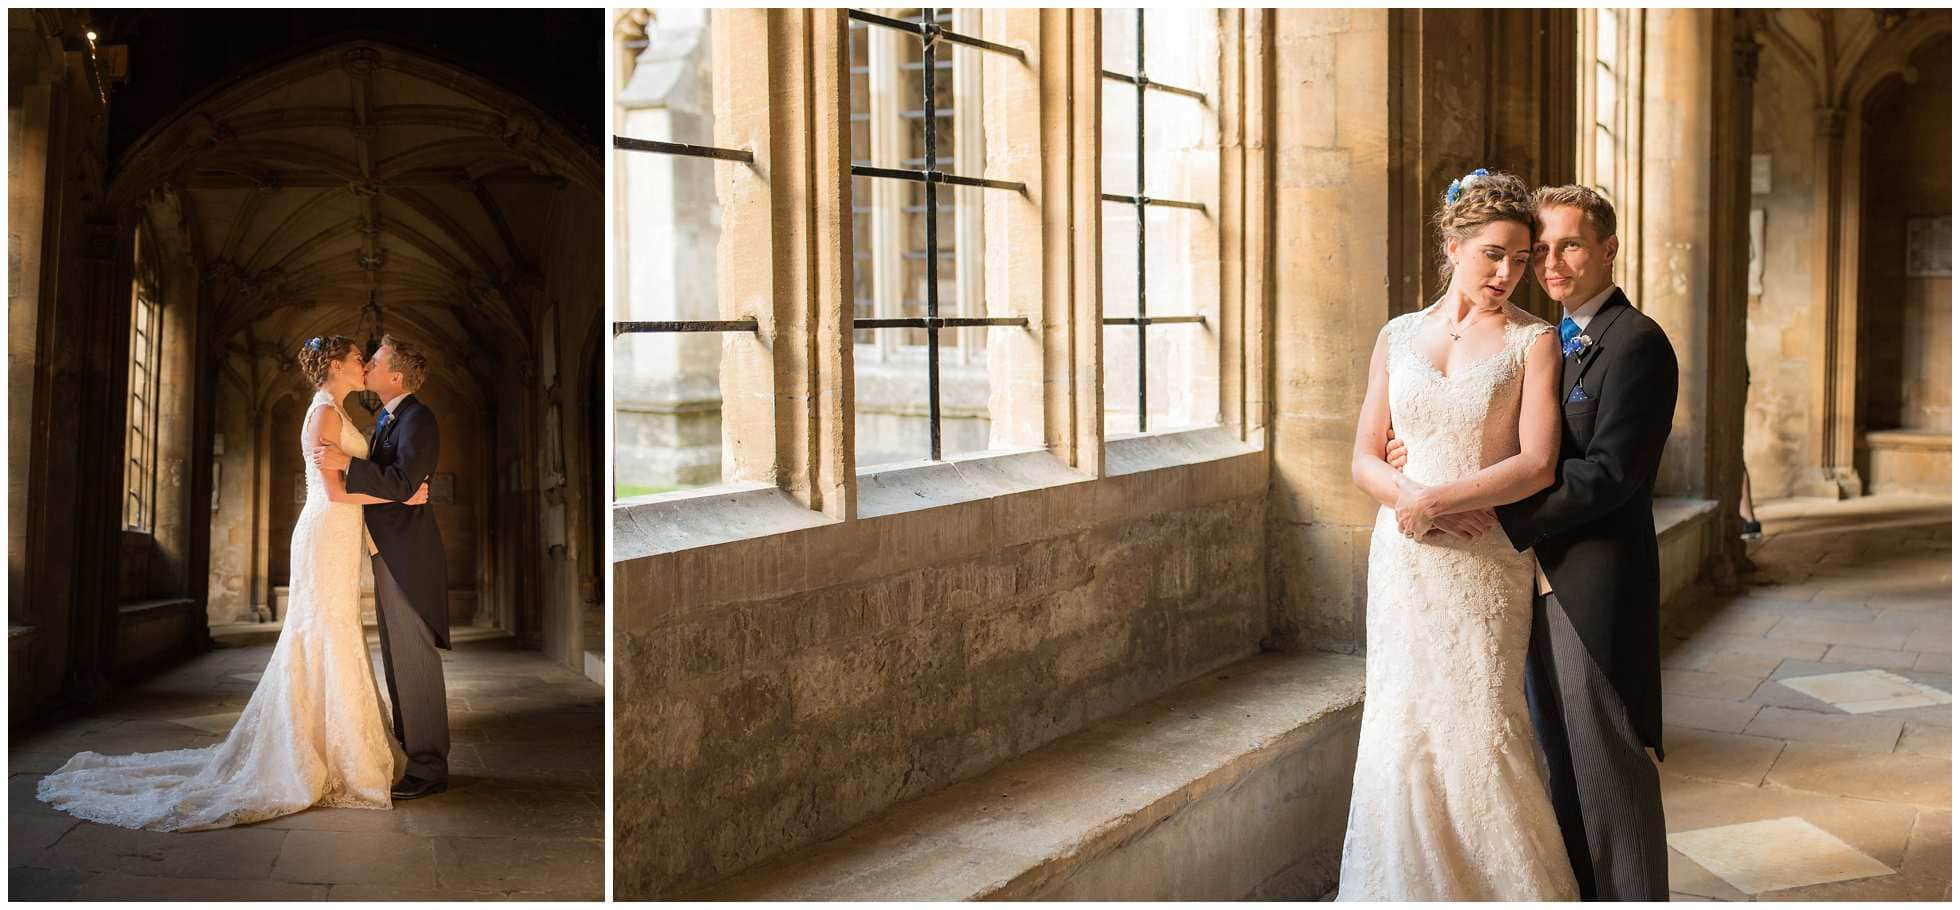 Wedding Photography in the cloisters of Christ Church college